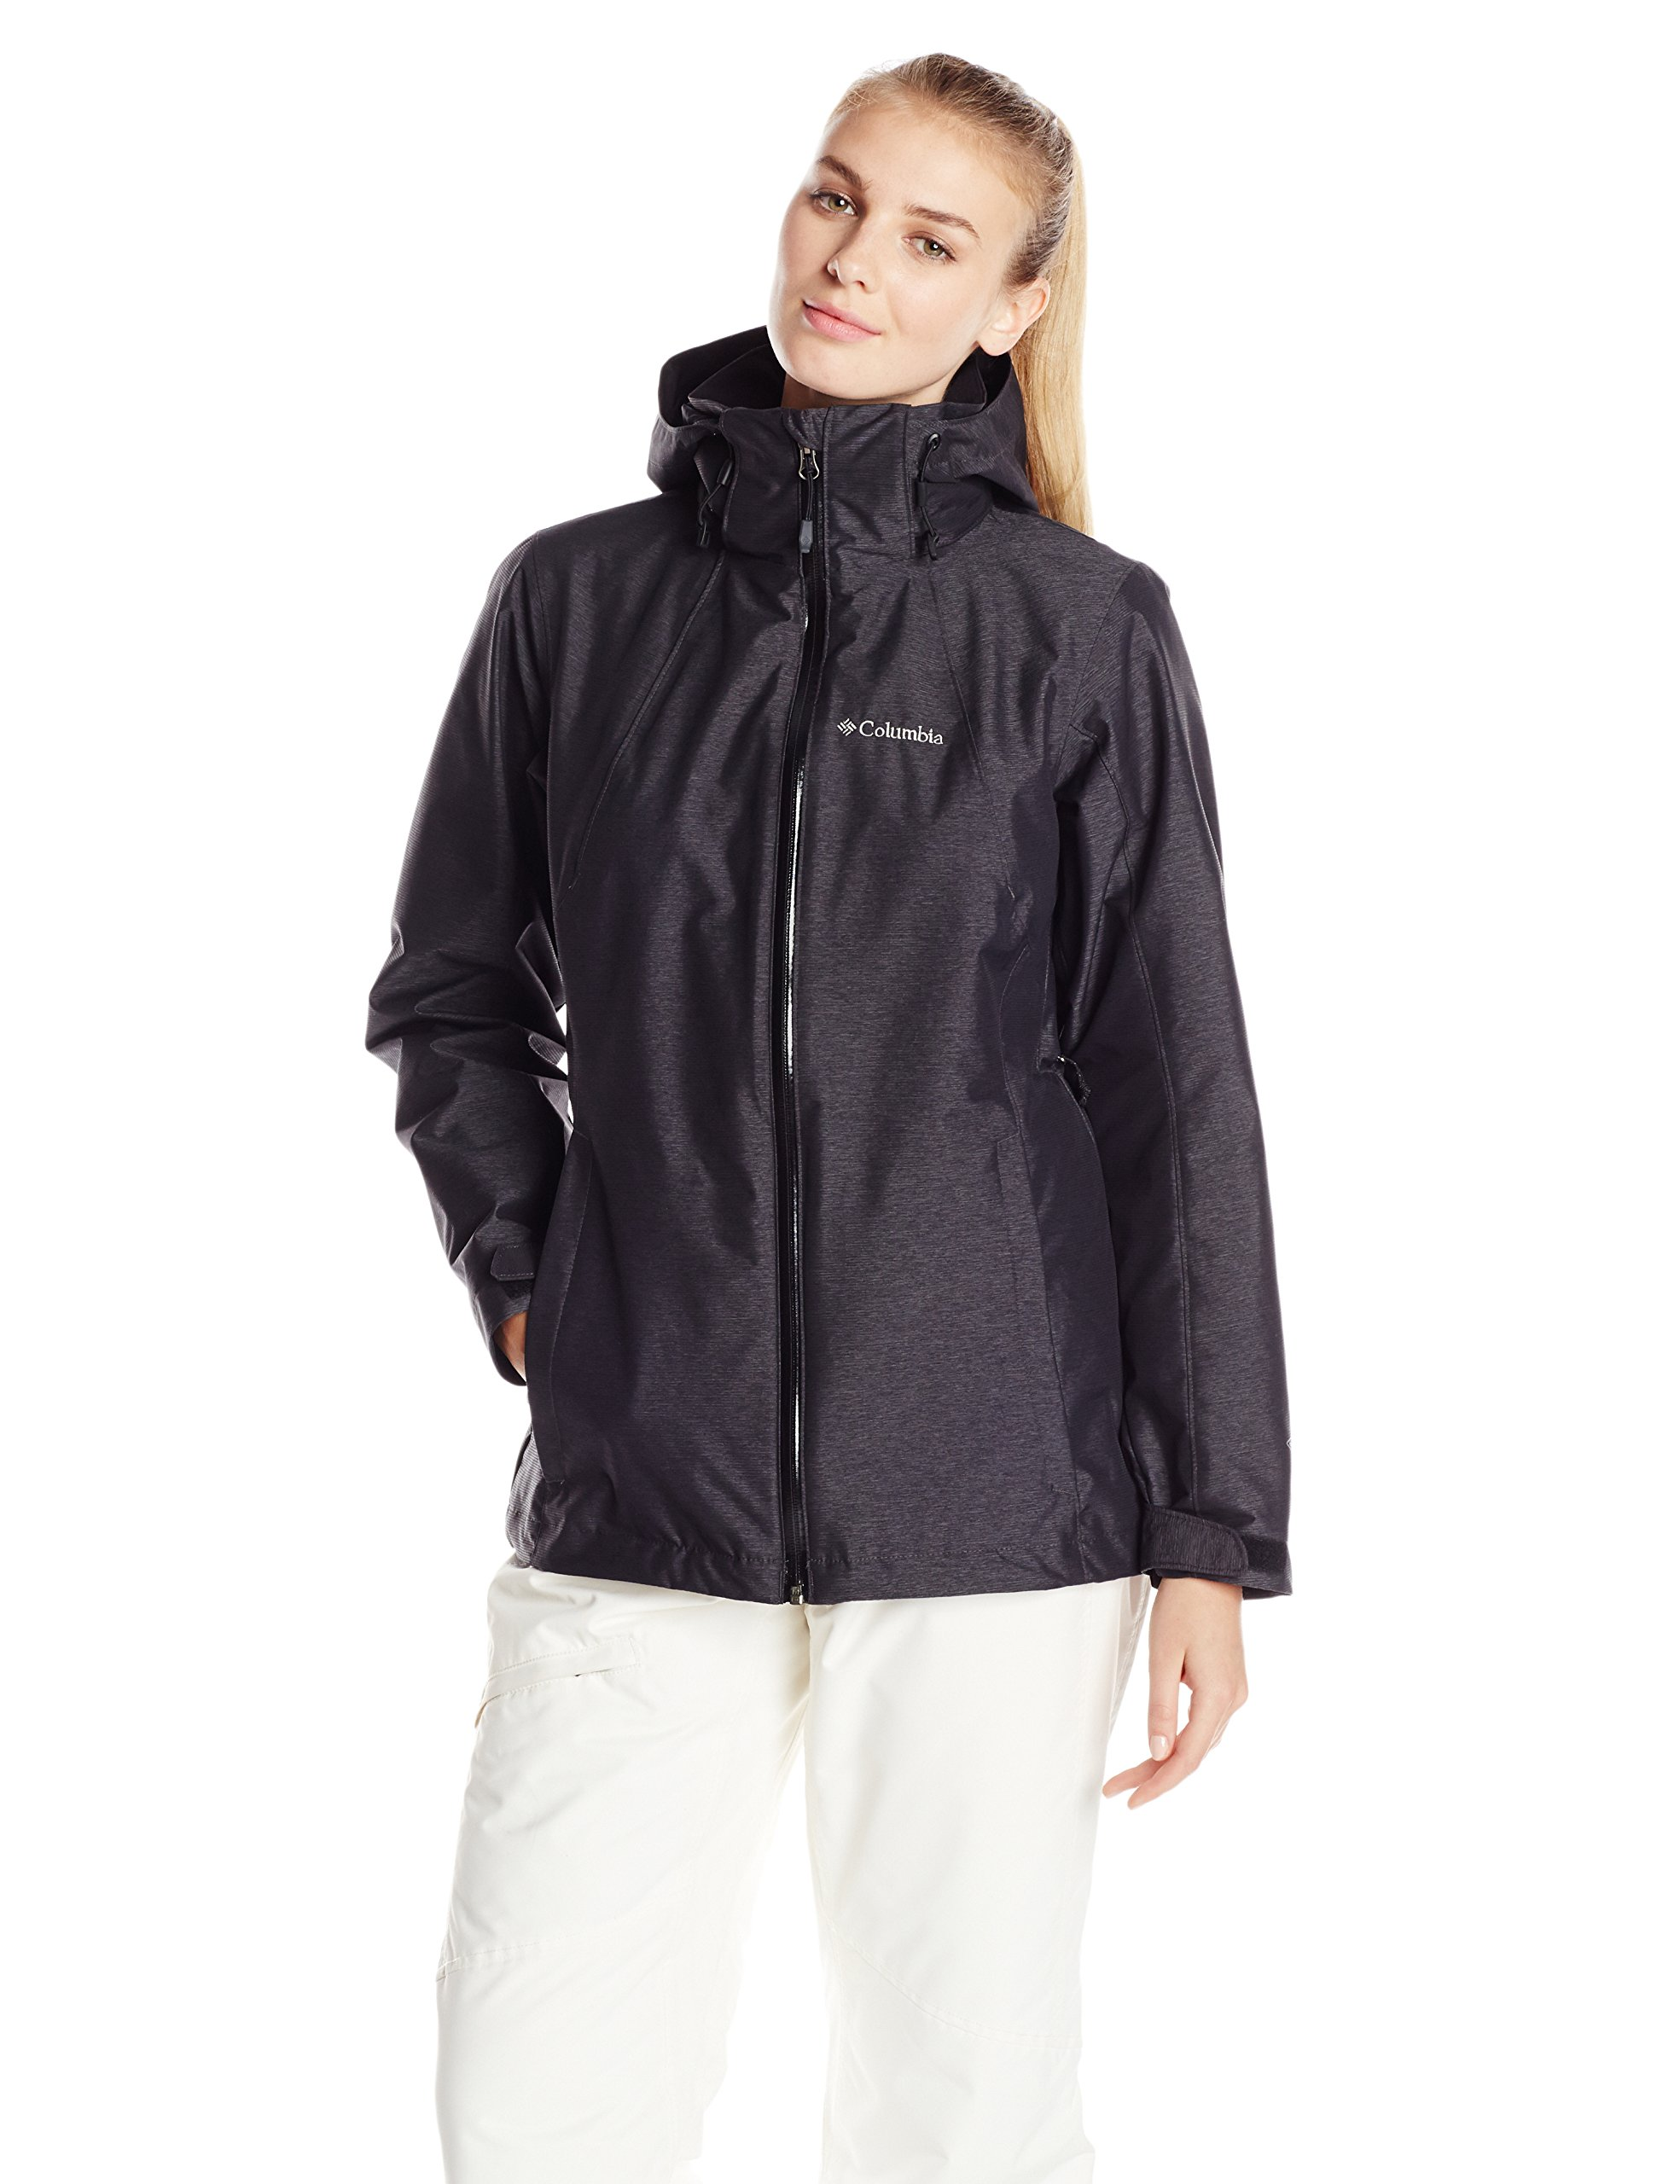 Columbia Women's Whirlibird Interchange Jacket, Black Cross Dye, Medium by Columbia (Image #1)